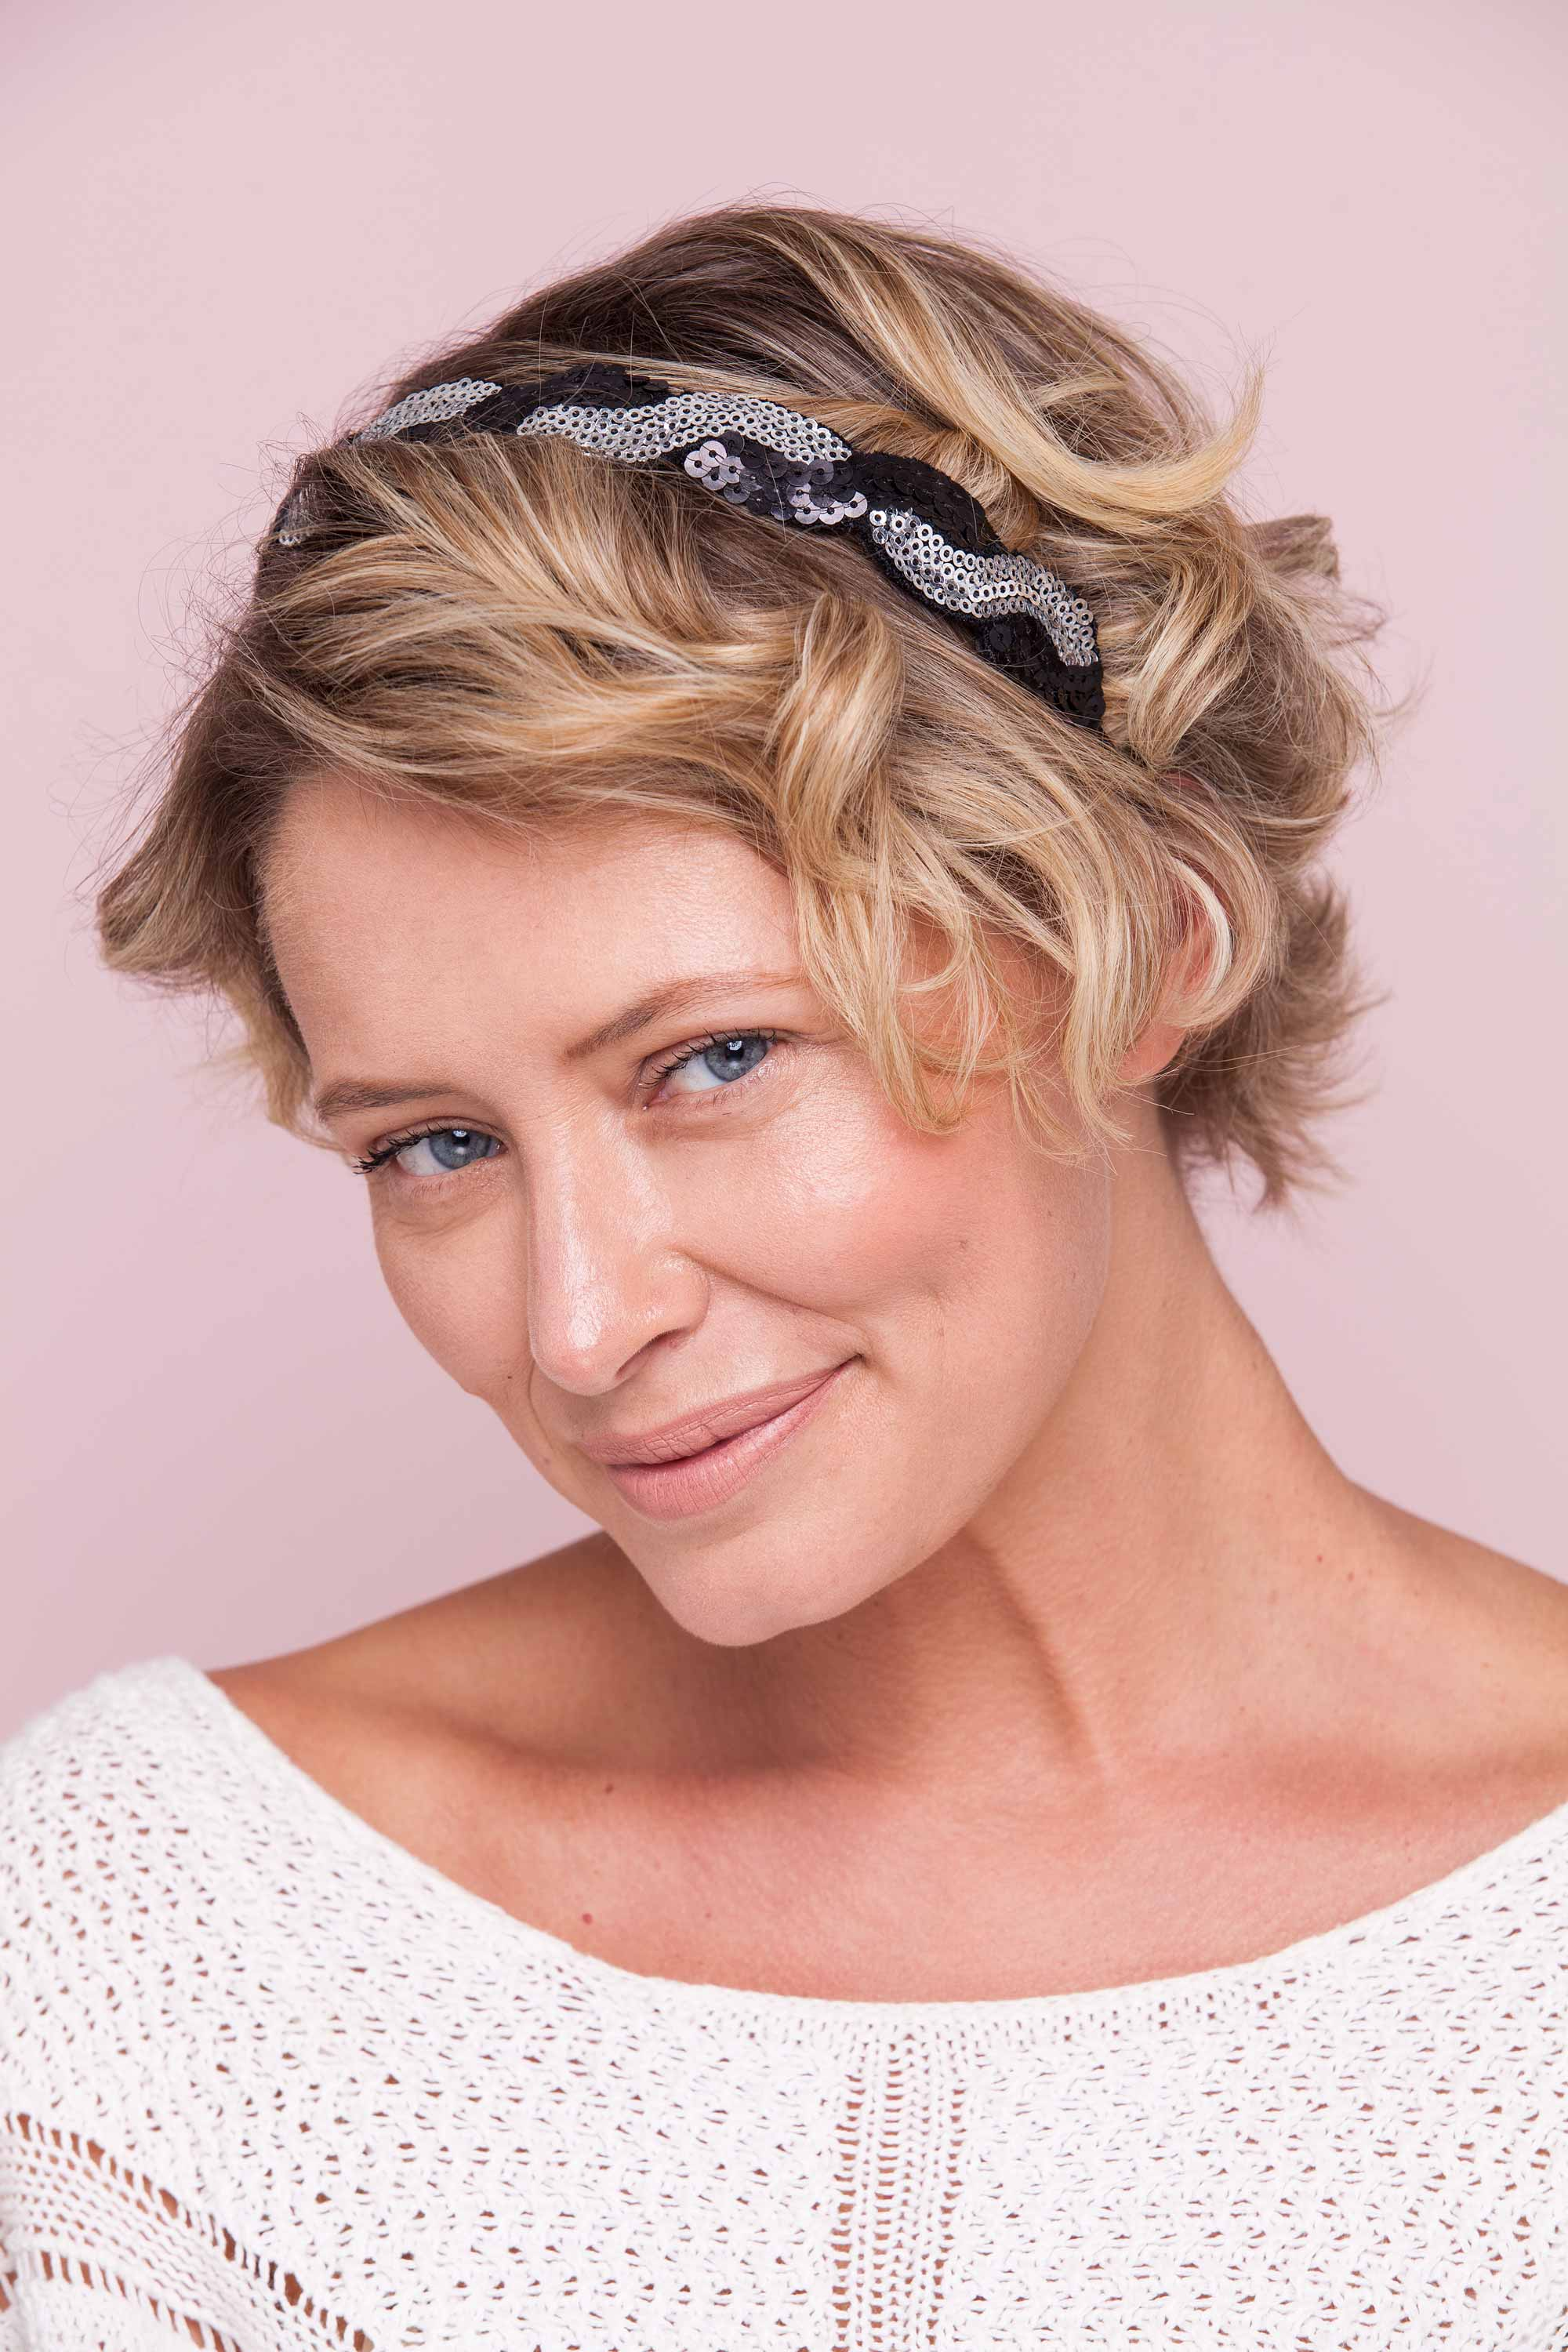 Headband Hairstyles 10 Easy And Charming Party Looks